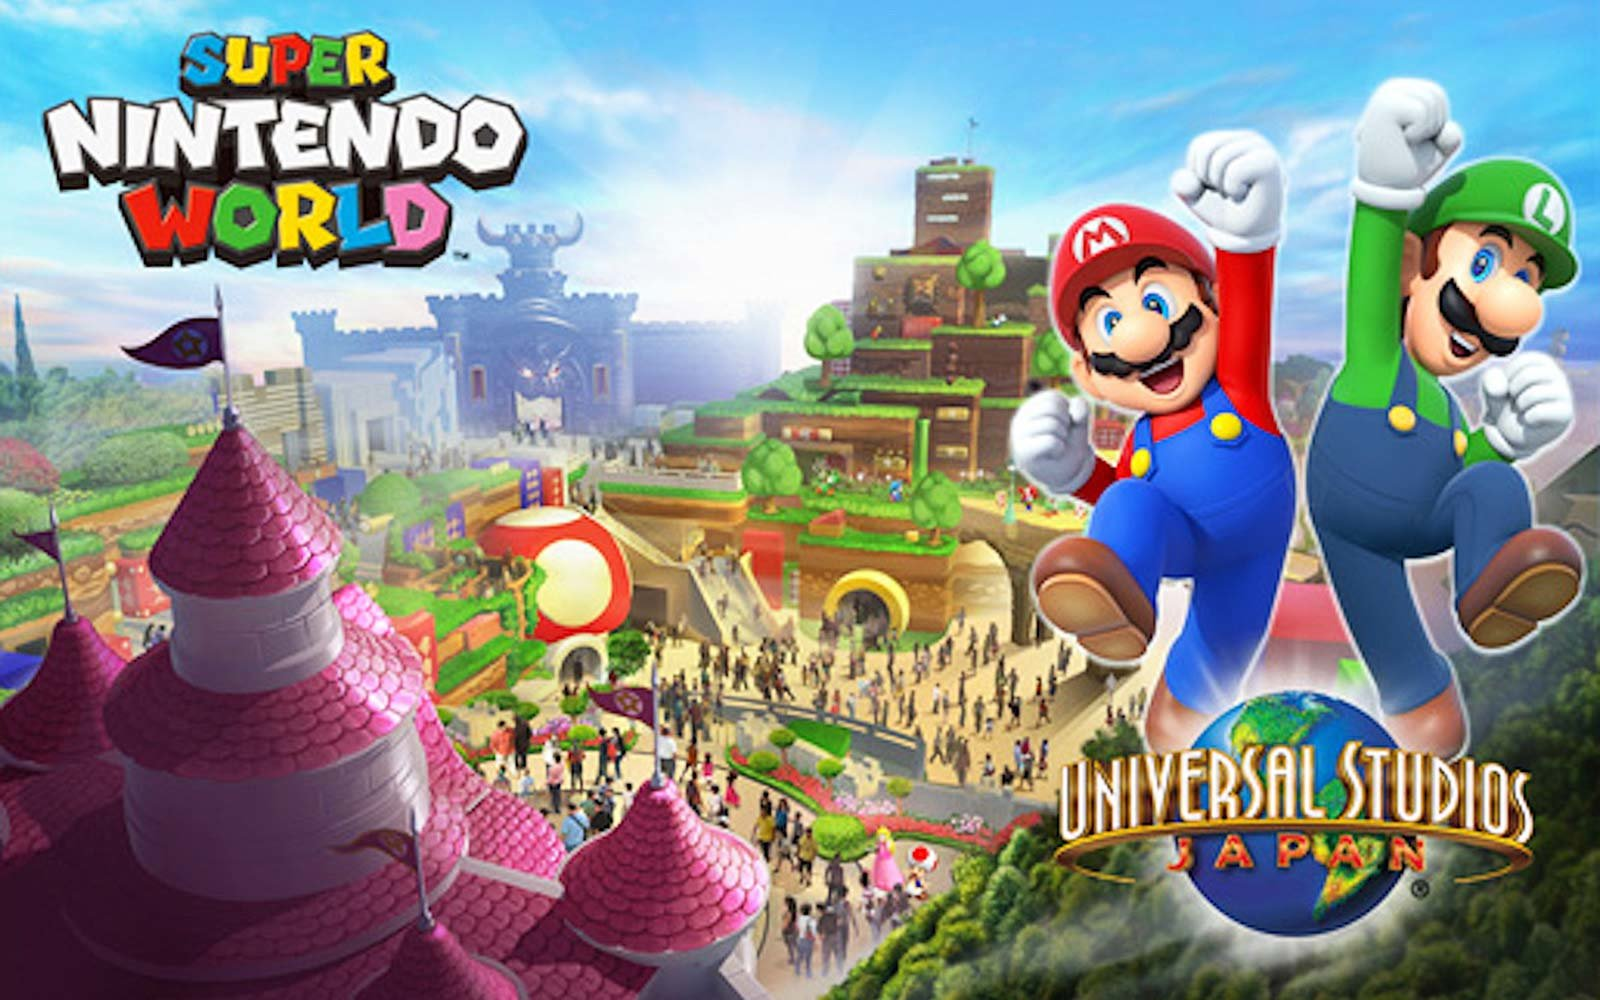 Super Nintendo World Universal Studios Japan